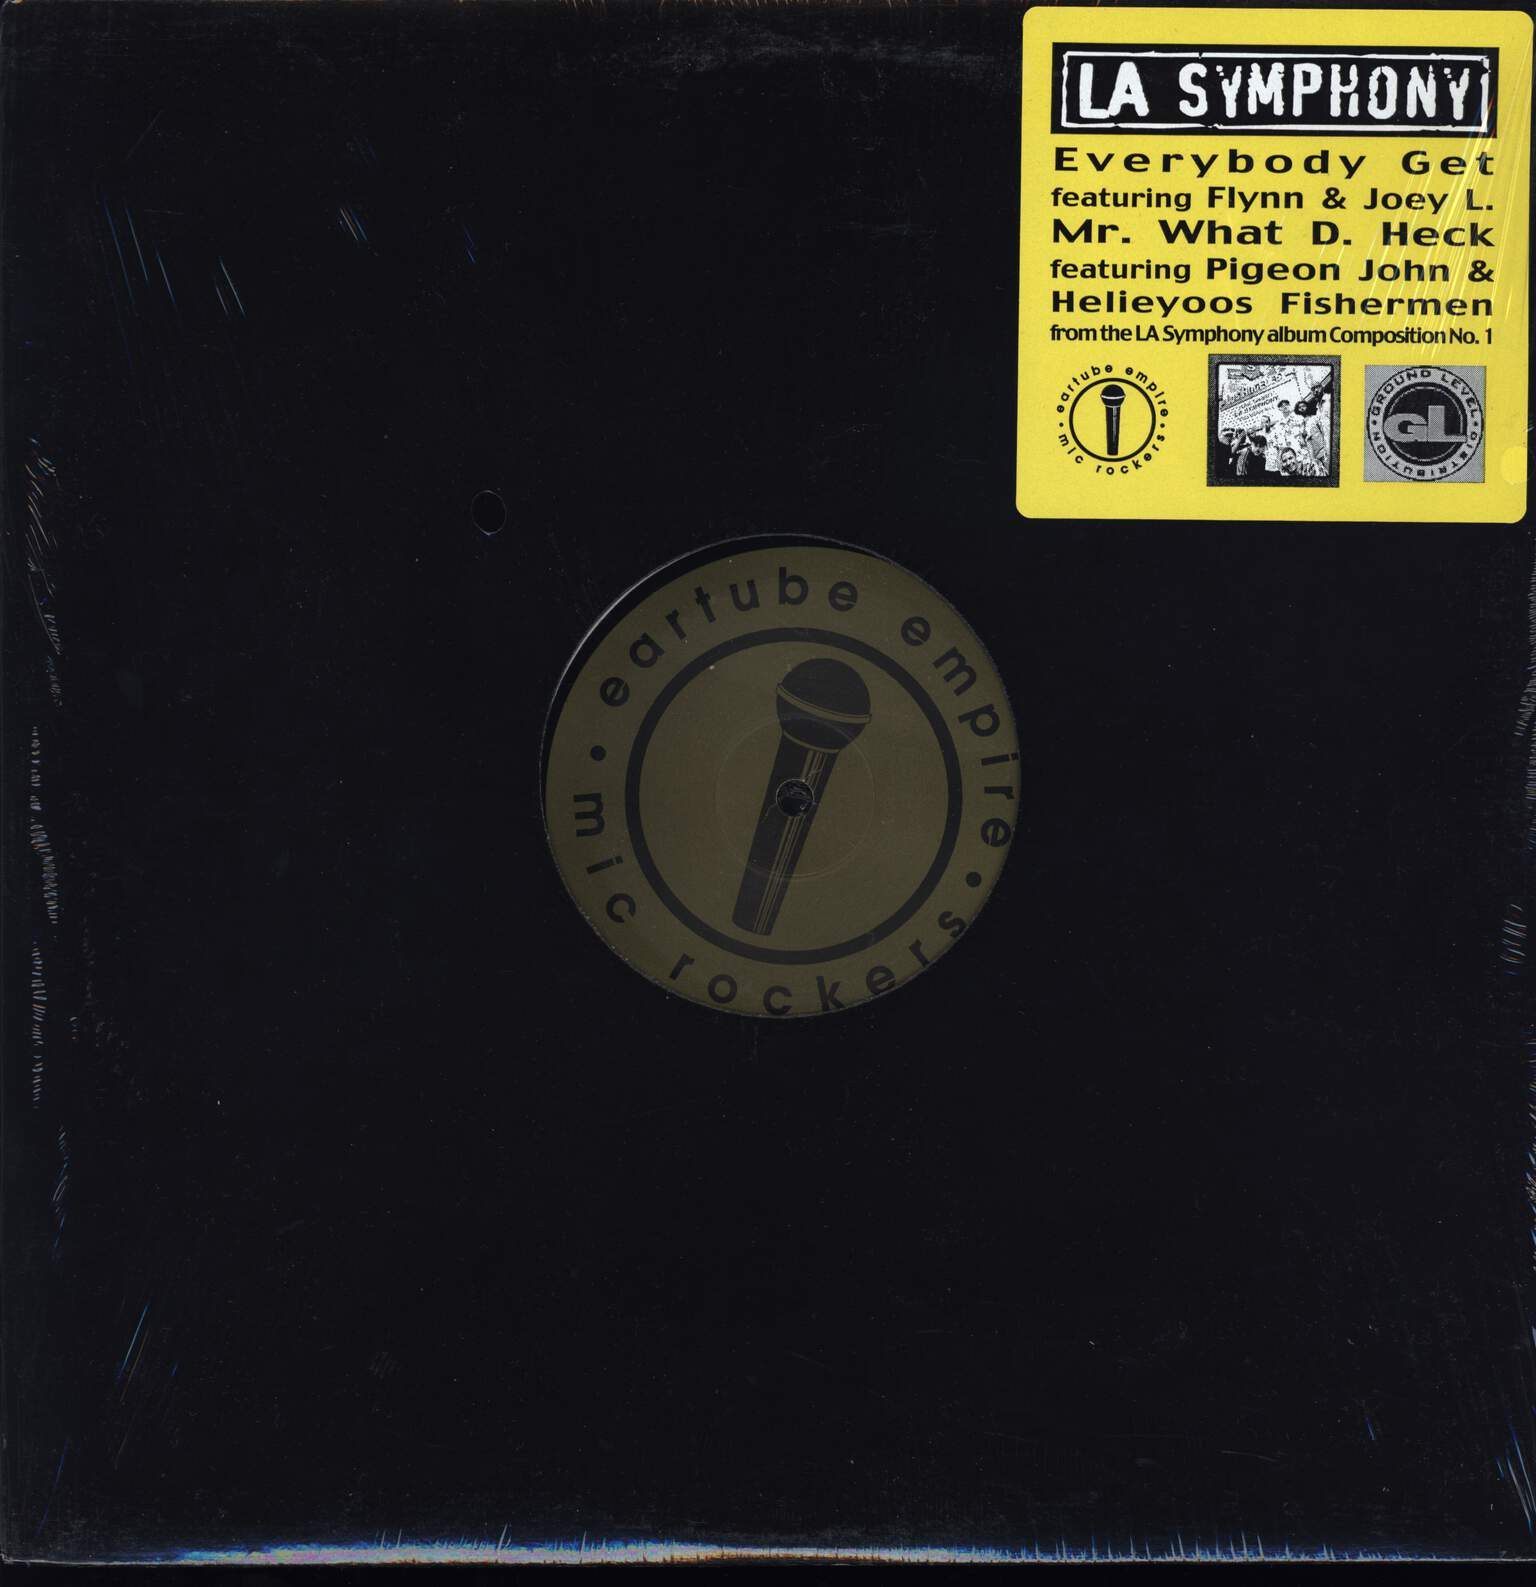 "L.A. Symphony: Everybody Get / Mr. What D. Heck, 12"" Maxi Single (Vinyl)"